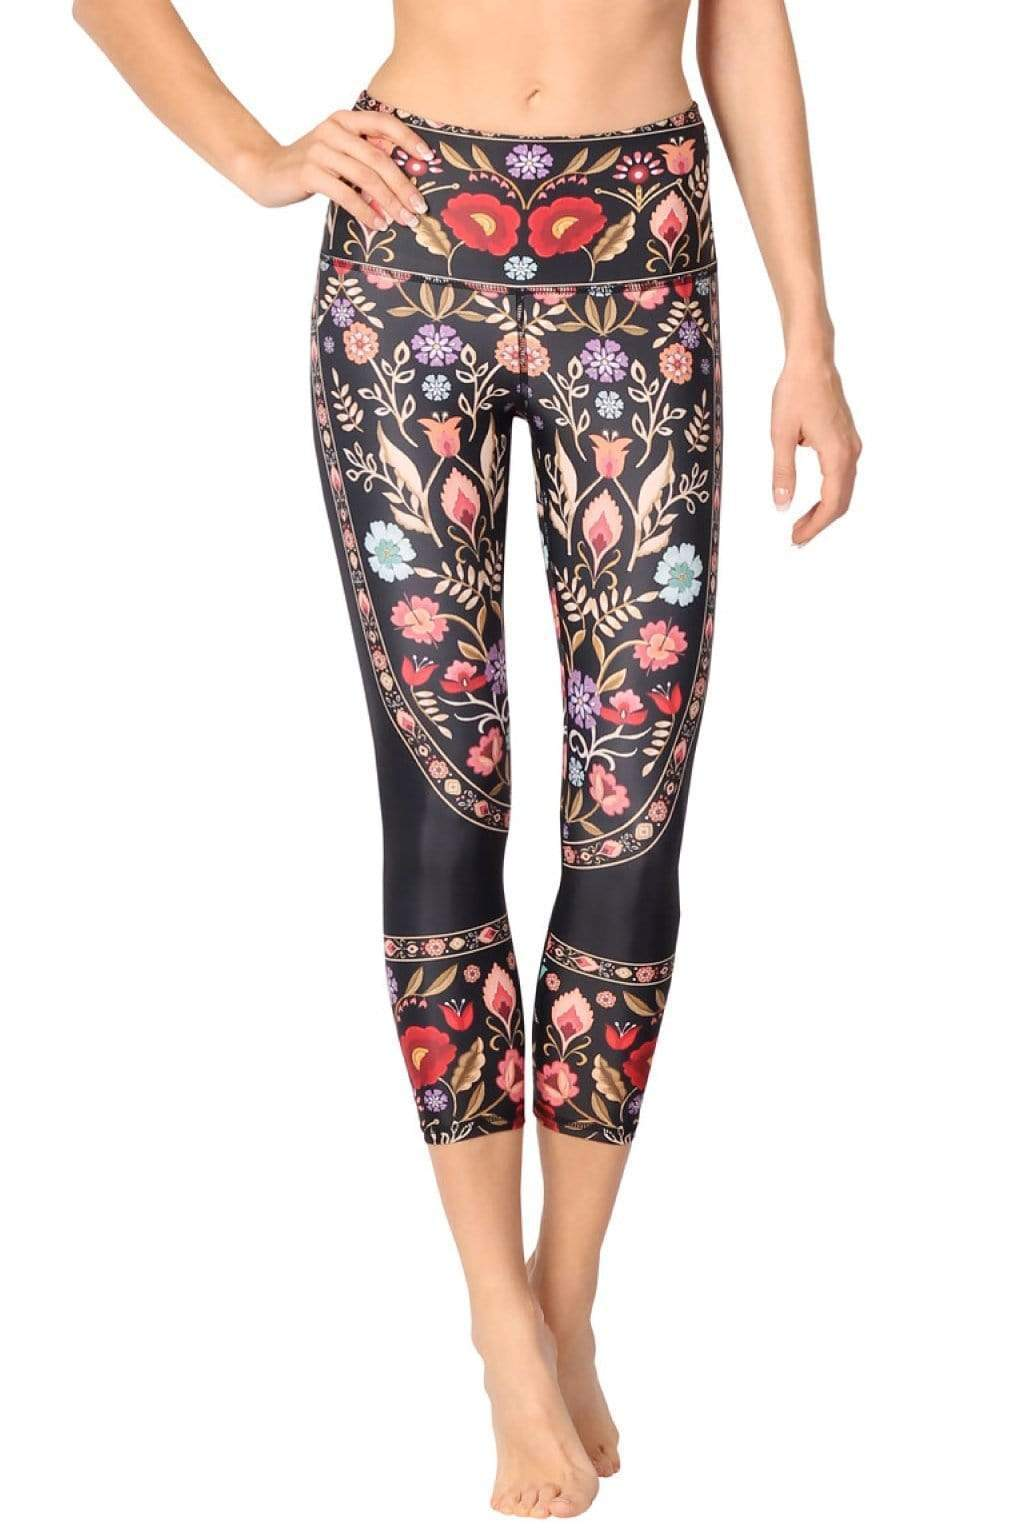 Yoga Democracy Leggings Rustica Printed Yoga Crops